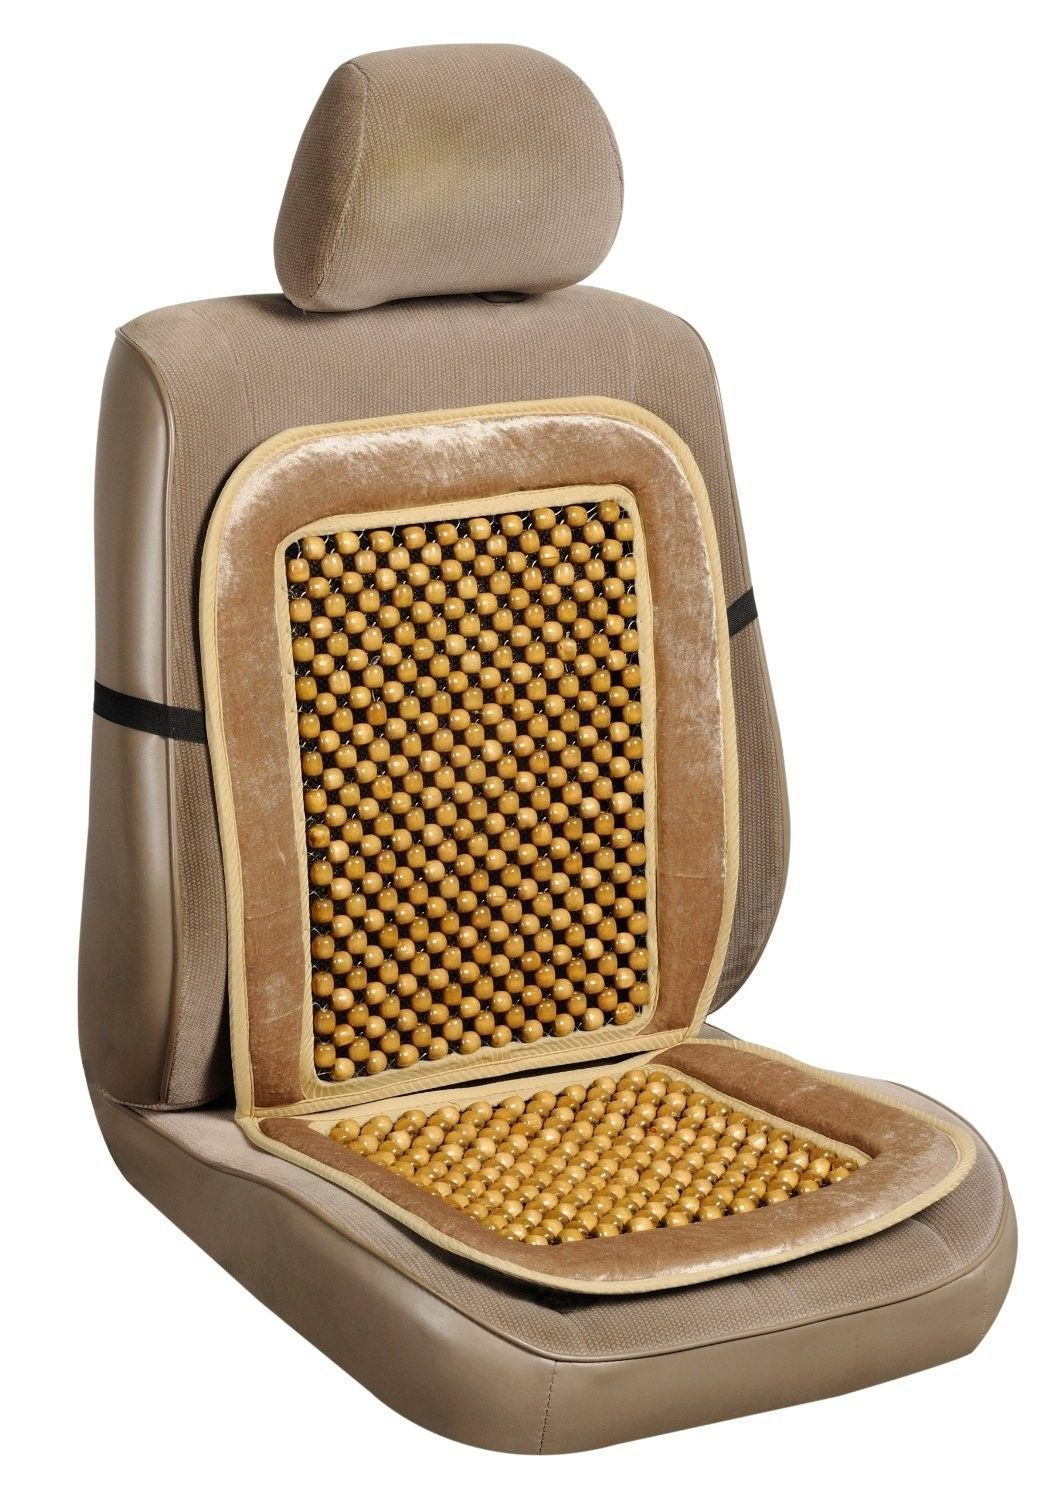 WOODEN BEADSUniversal Beige Wooden Beaded Seat Massage Cushion Car Cover